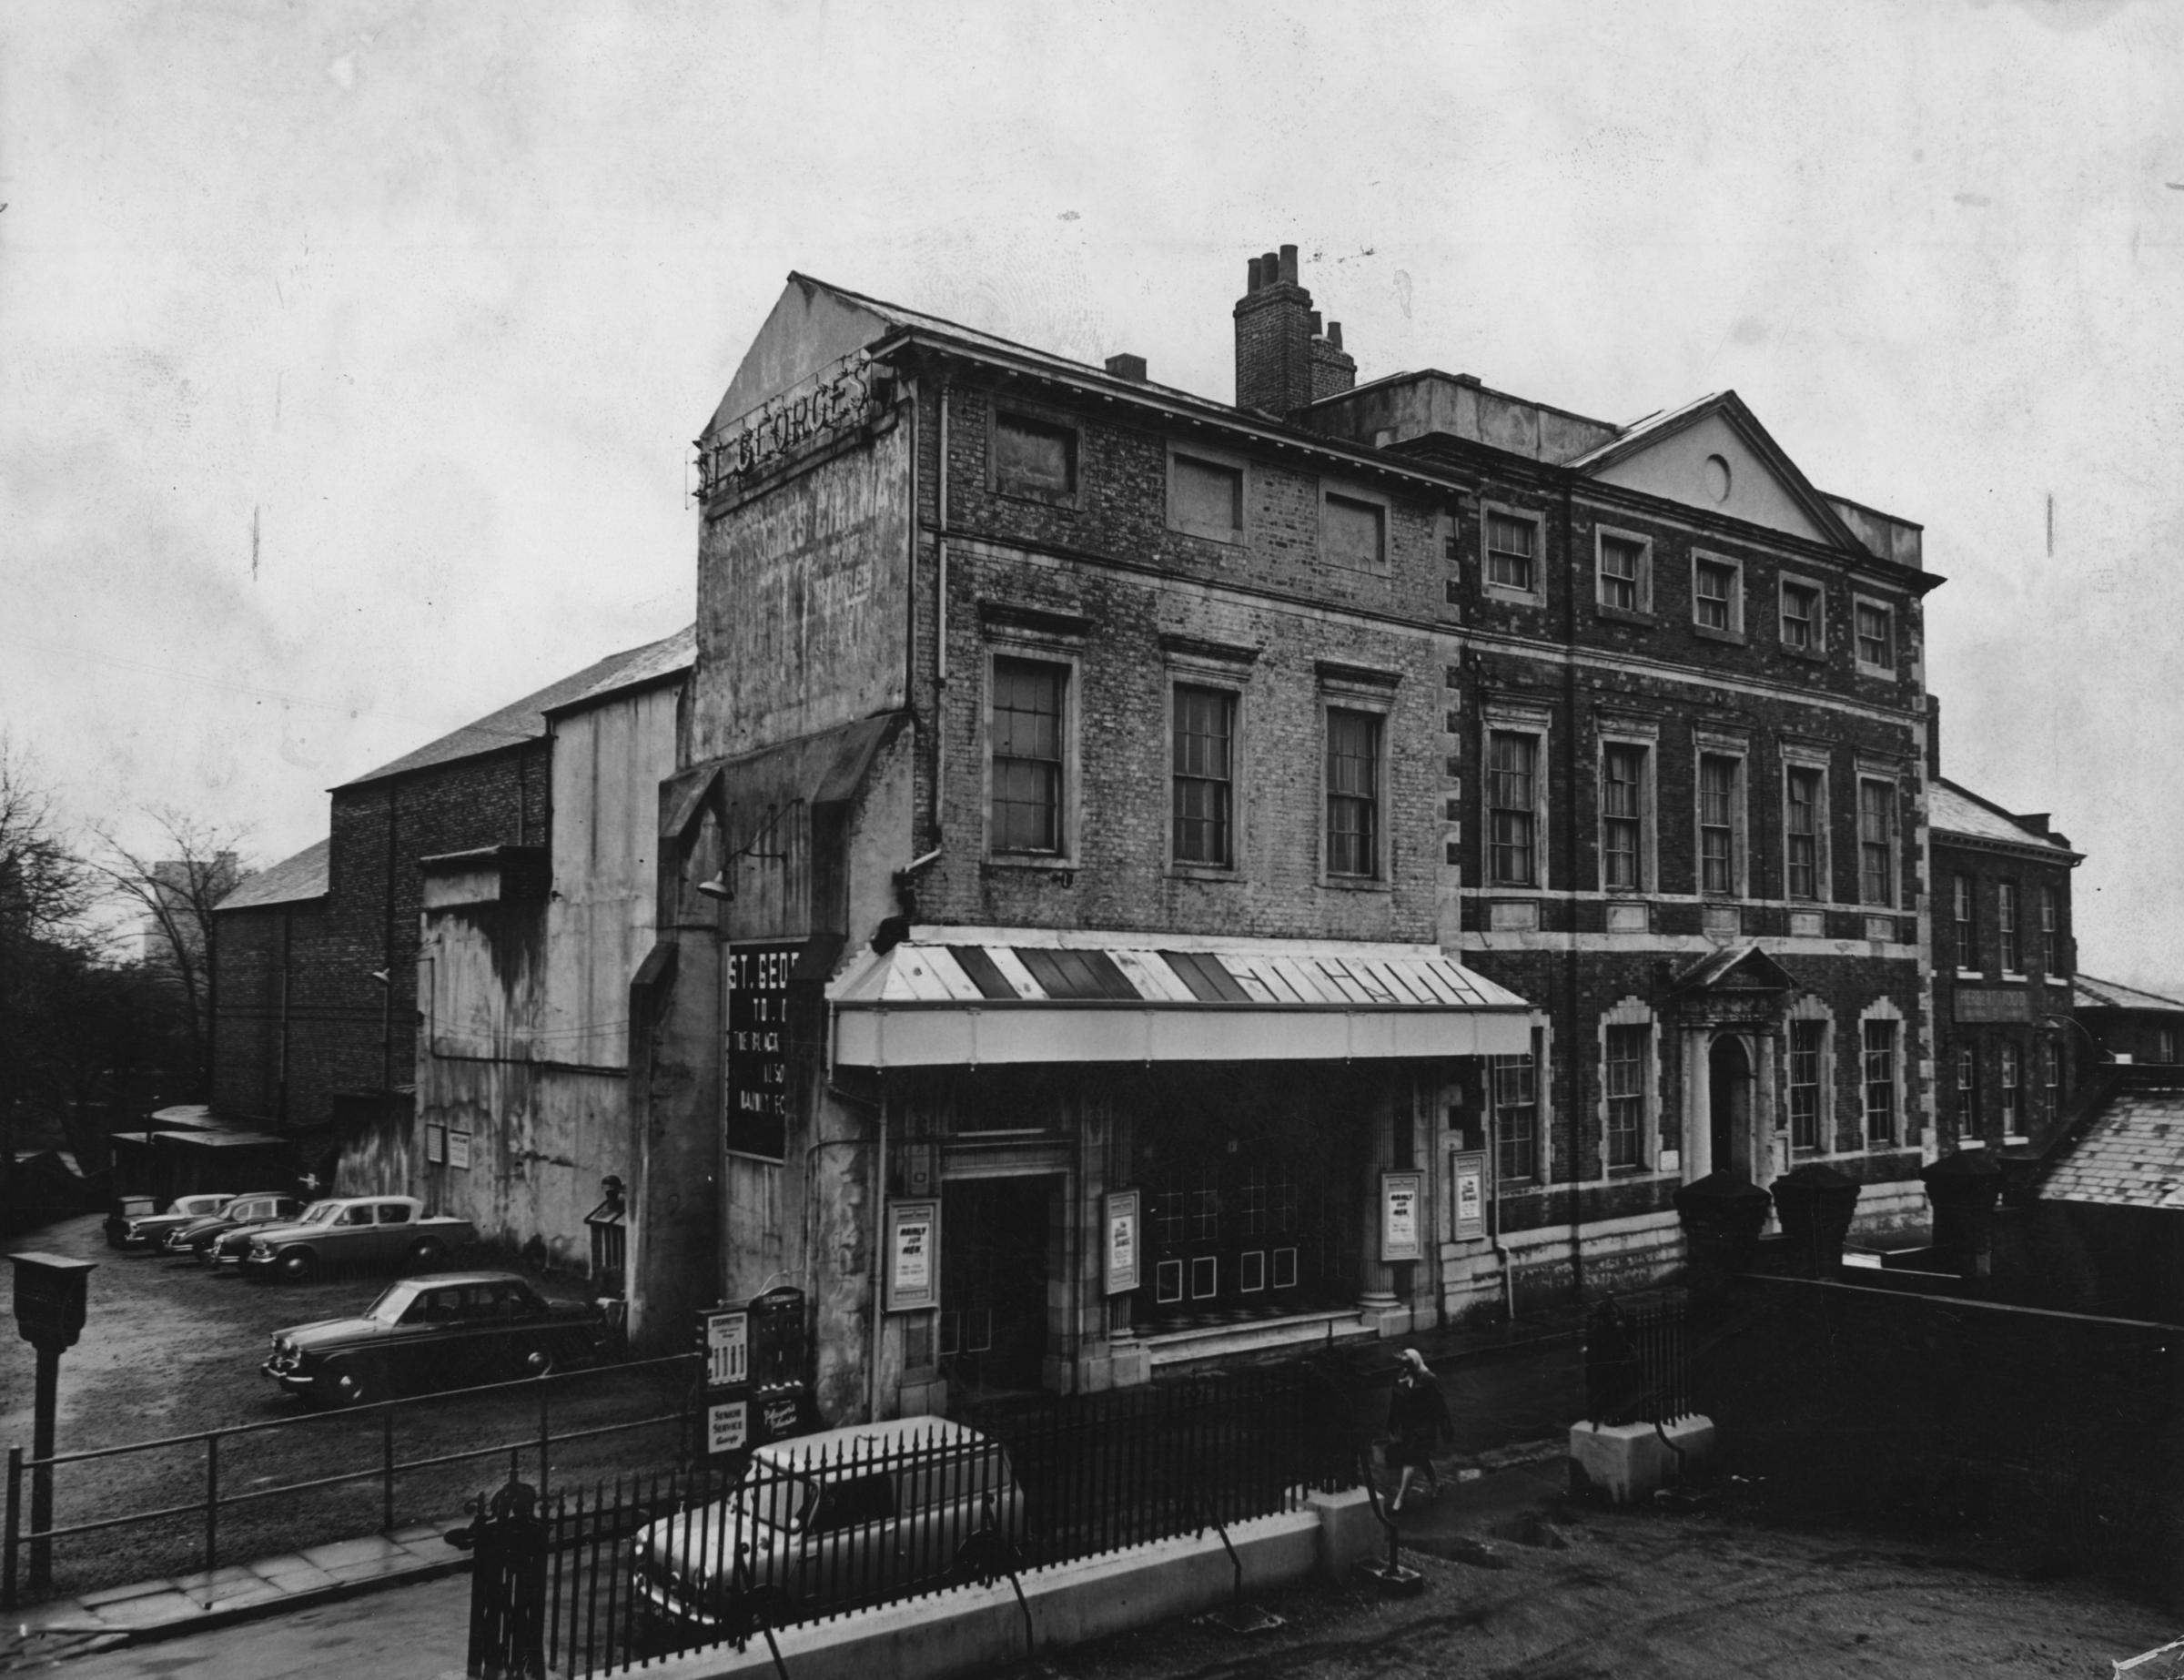 St George's Hall Cinema, now Fairfax House, pictured in 1965 after the cinema had closed